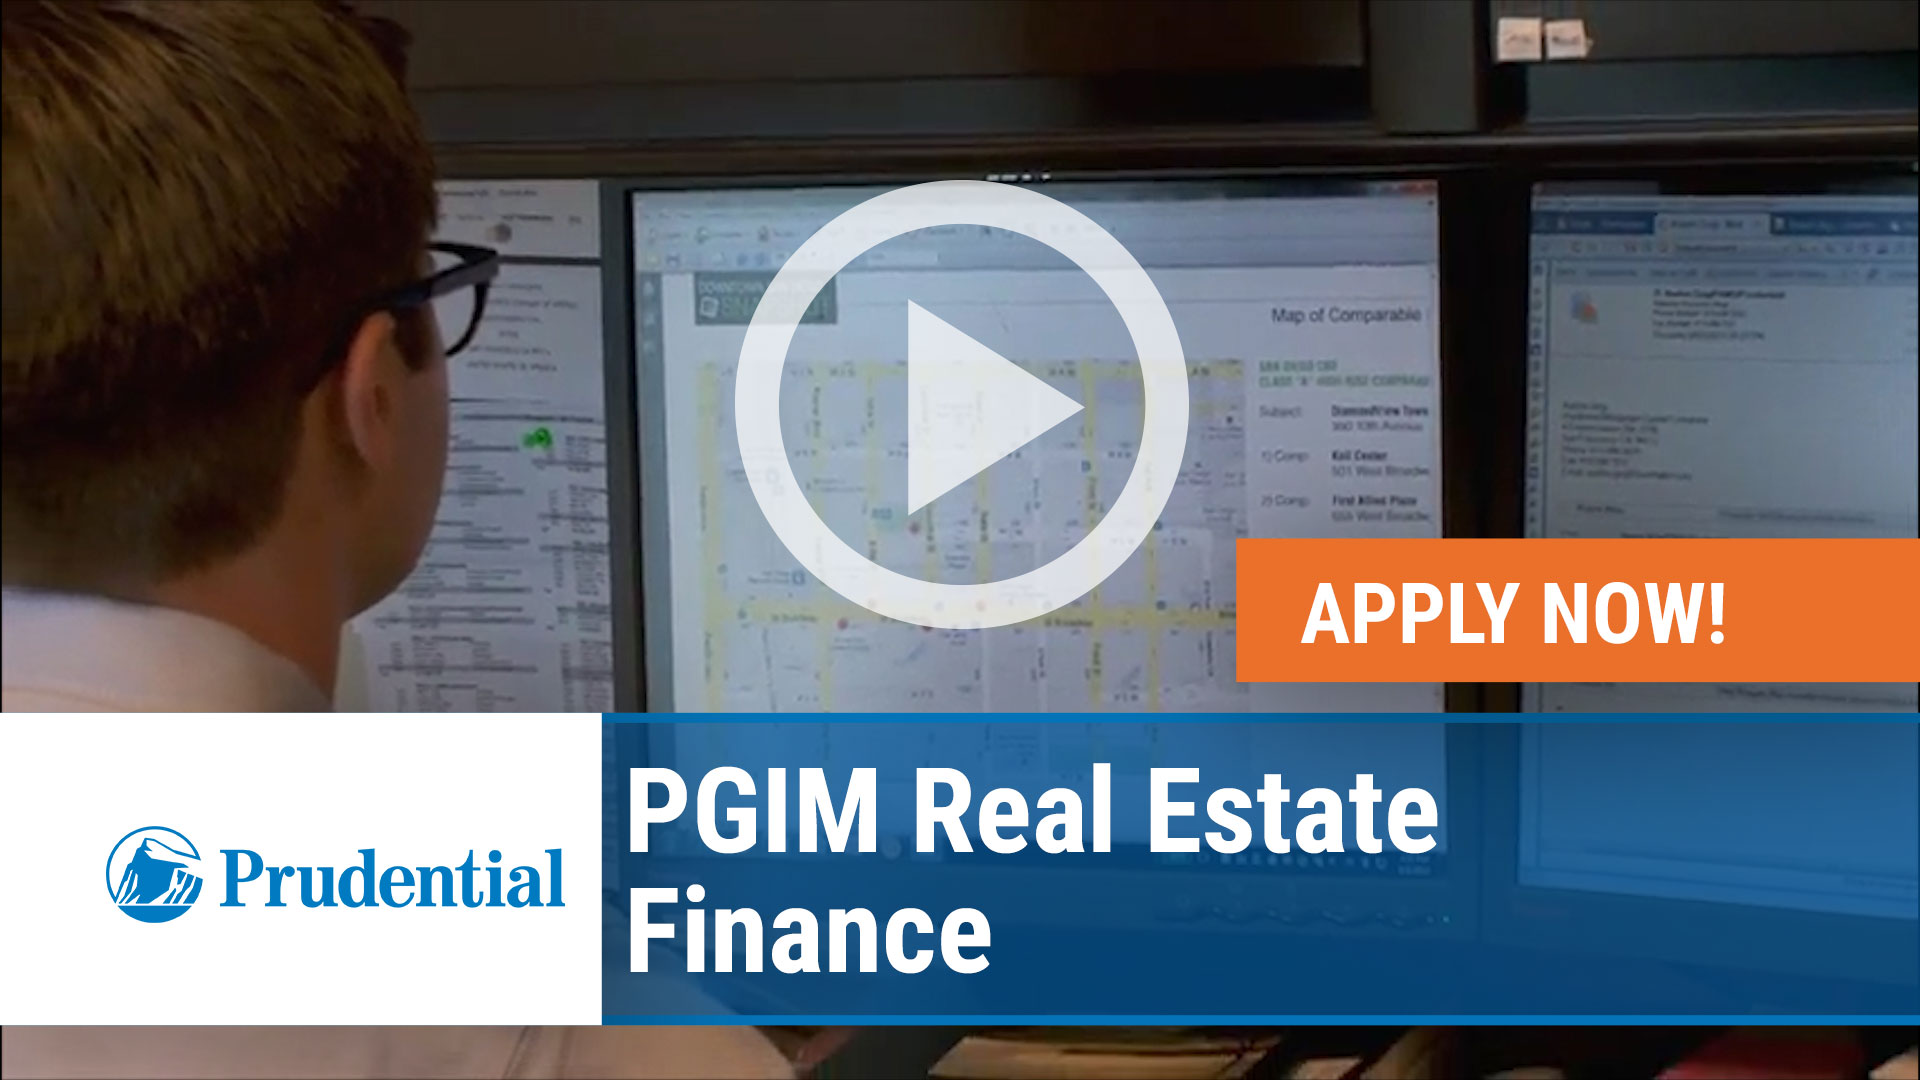 Watch our careers video for available job opening PGIM Real Estate Finance in Arlington, VA